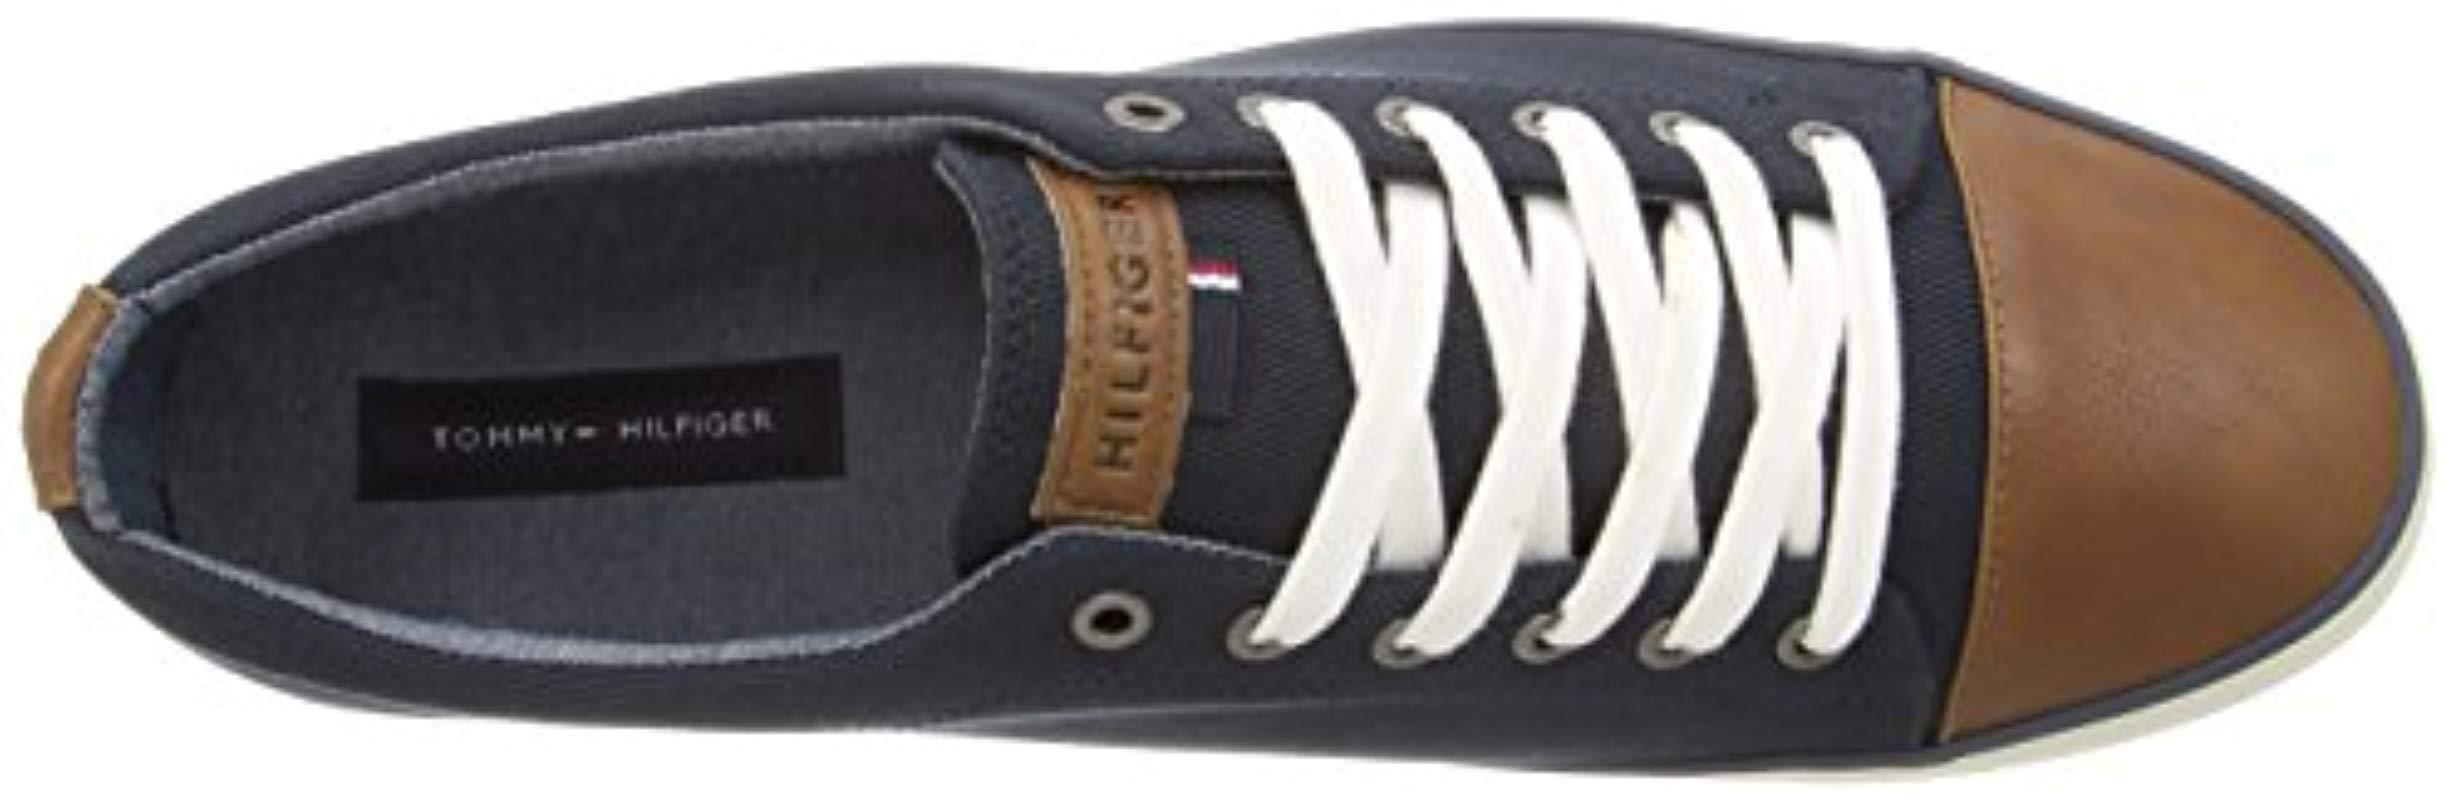 890ec008094f0 Tommy Hilfiger - Blue S Parma Low Top Lace Up Fashion Sneakers for Men -  Lyst. View fullscreen